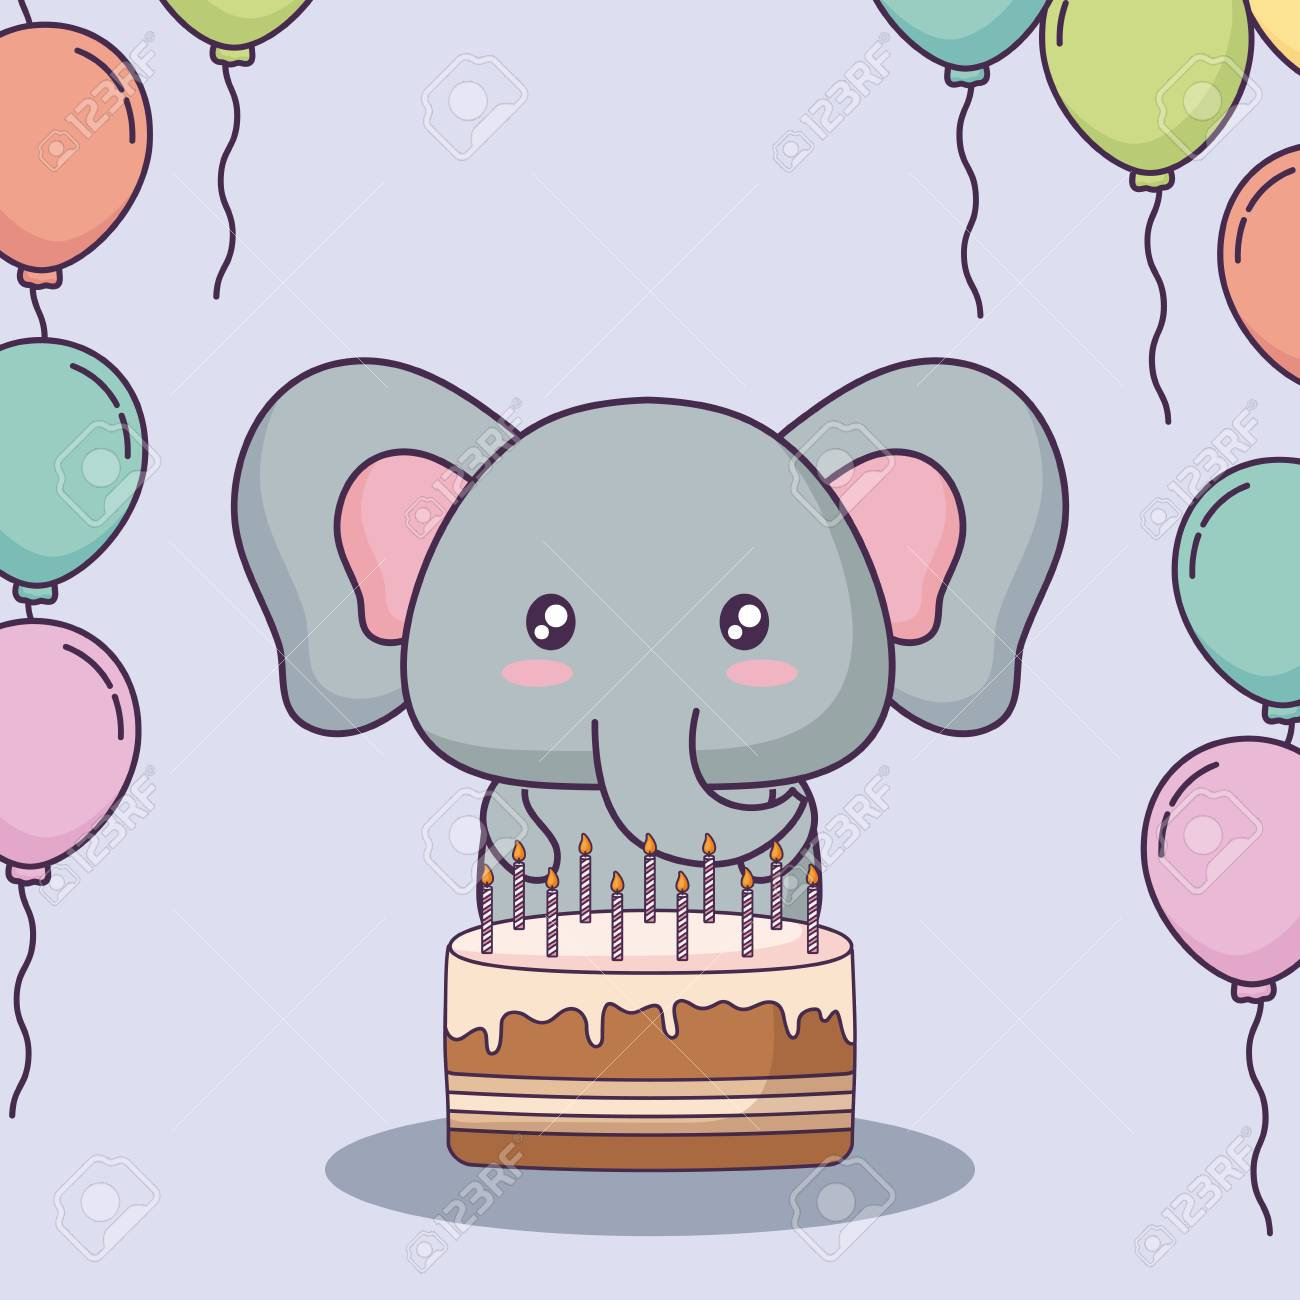 Sensational Cute Elephant With Birthday Cake And Decorative Balloons Over Funny Birthday Cards Online Overcheapnameinfo